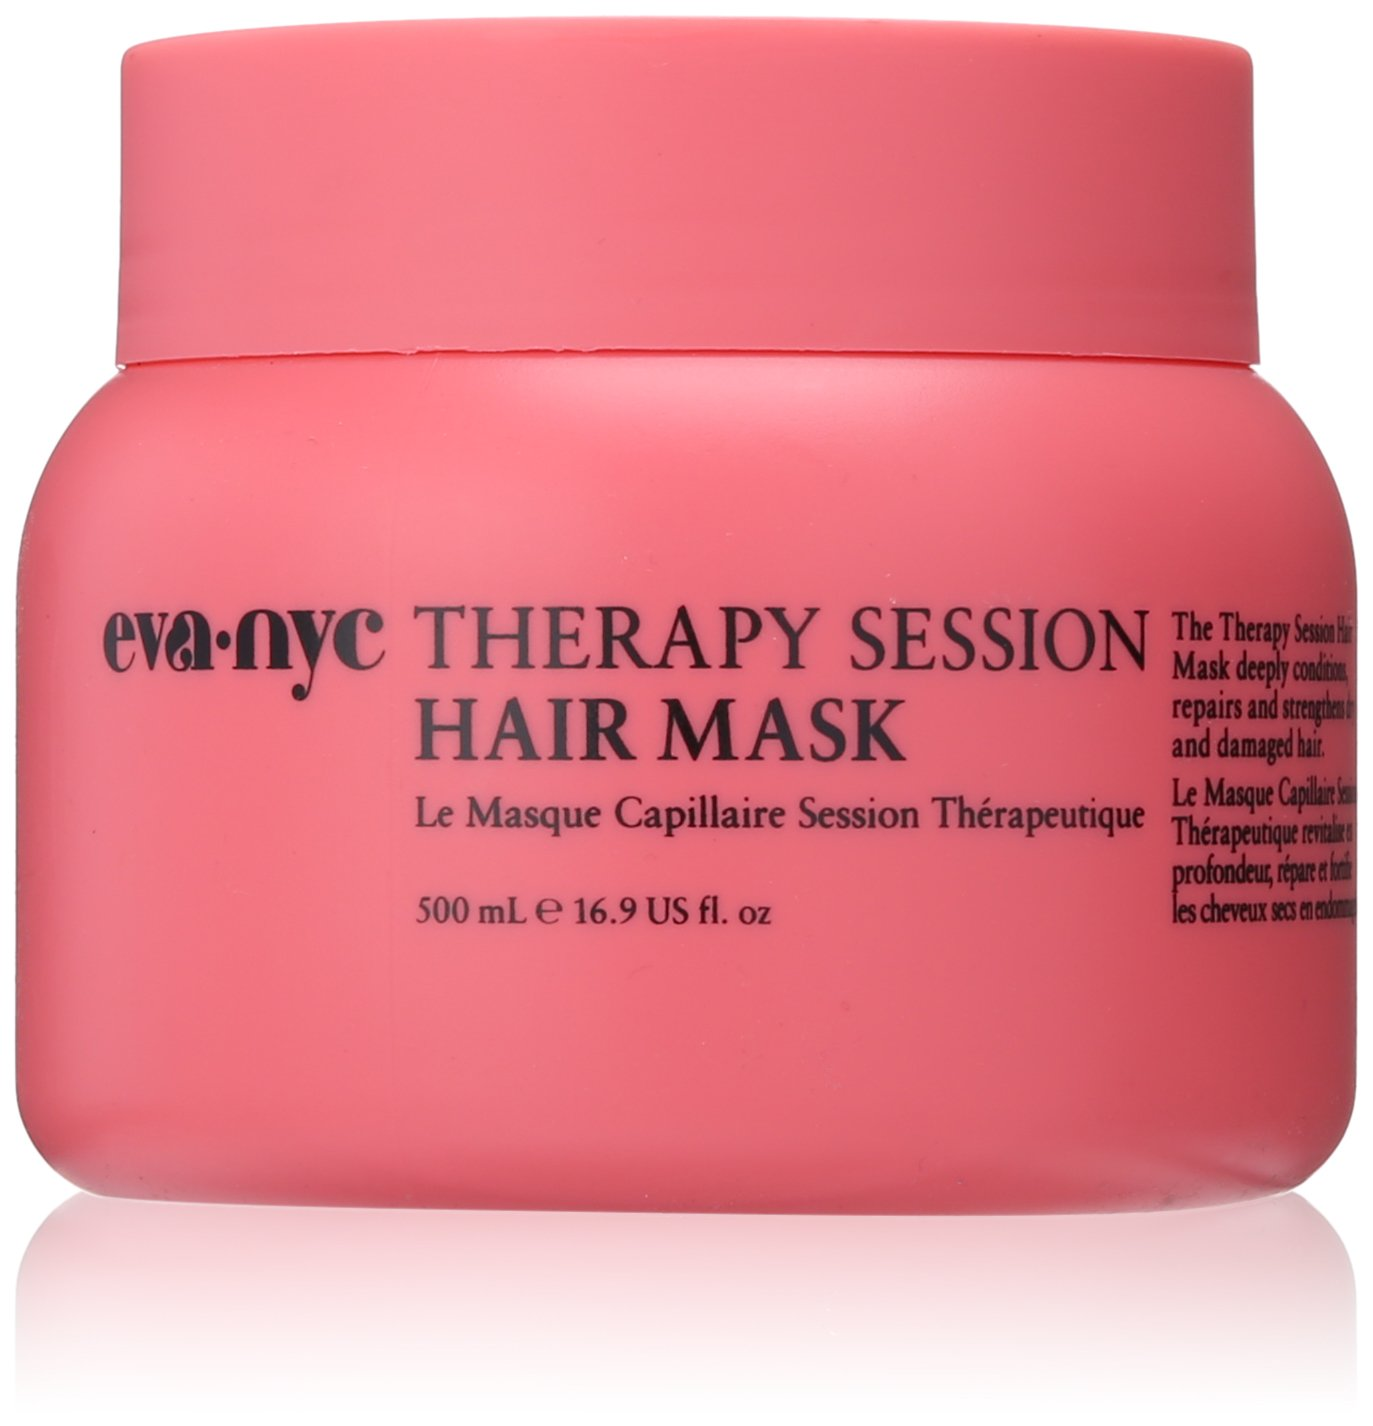 Eva NYC Therapy Sessions Hair Mask EV50.10323